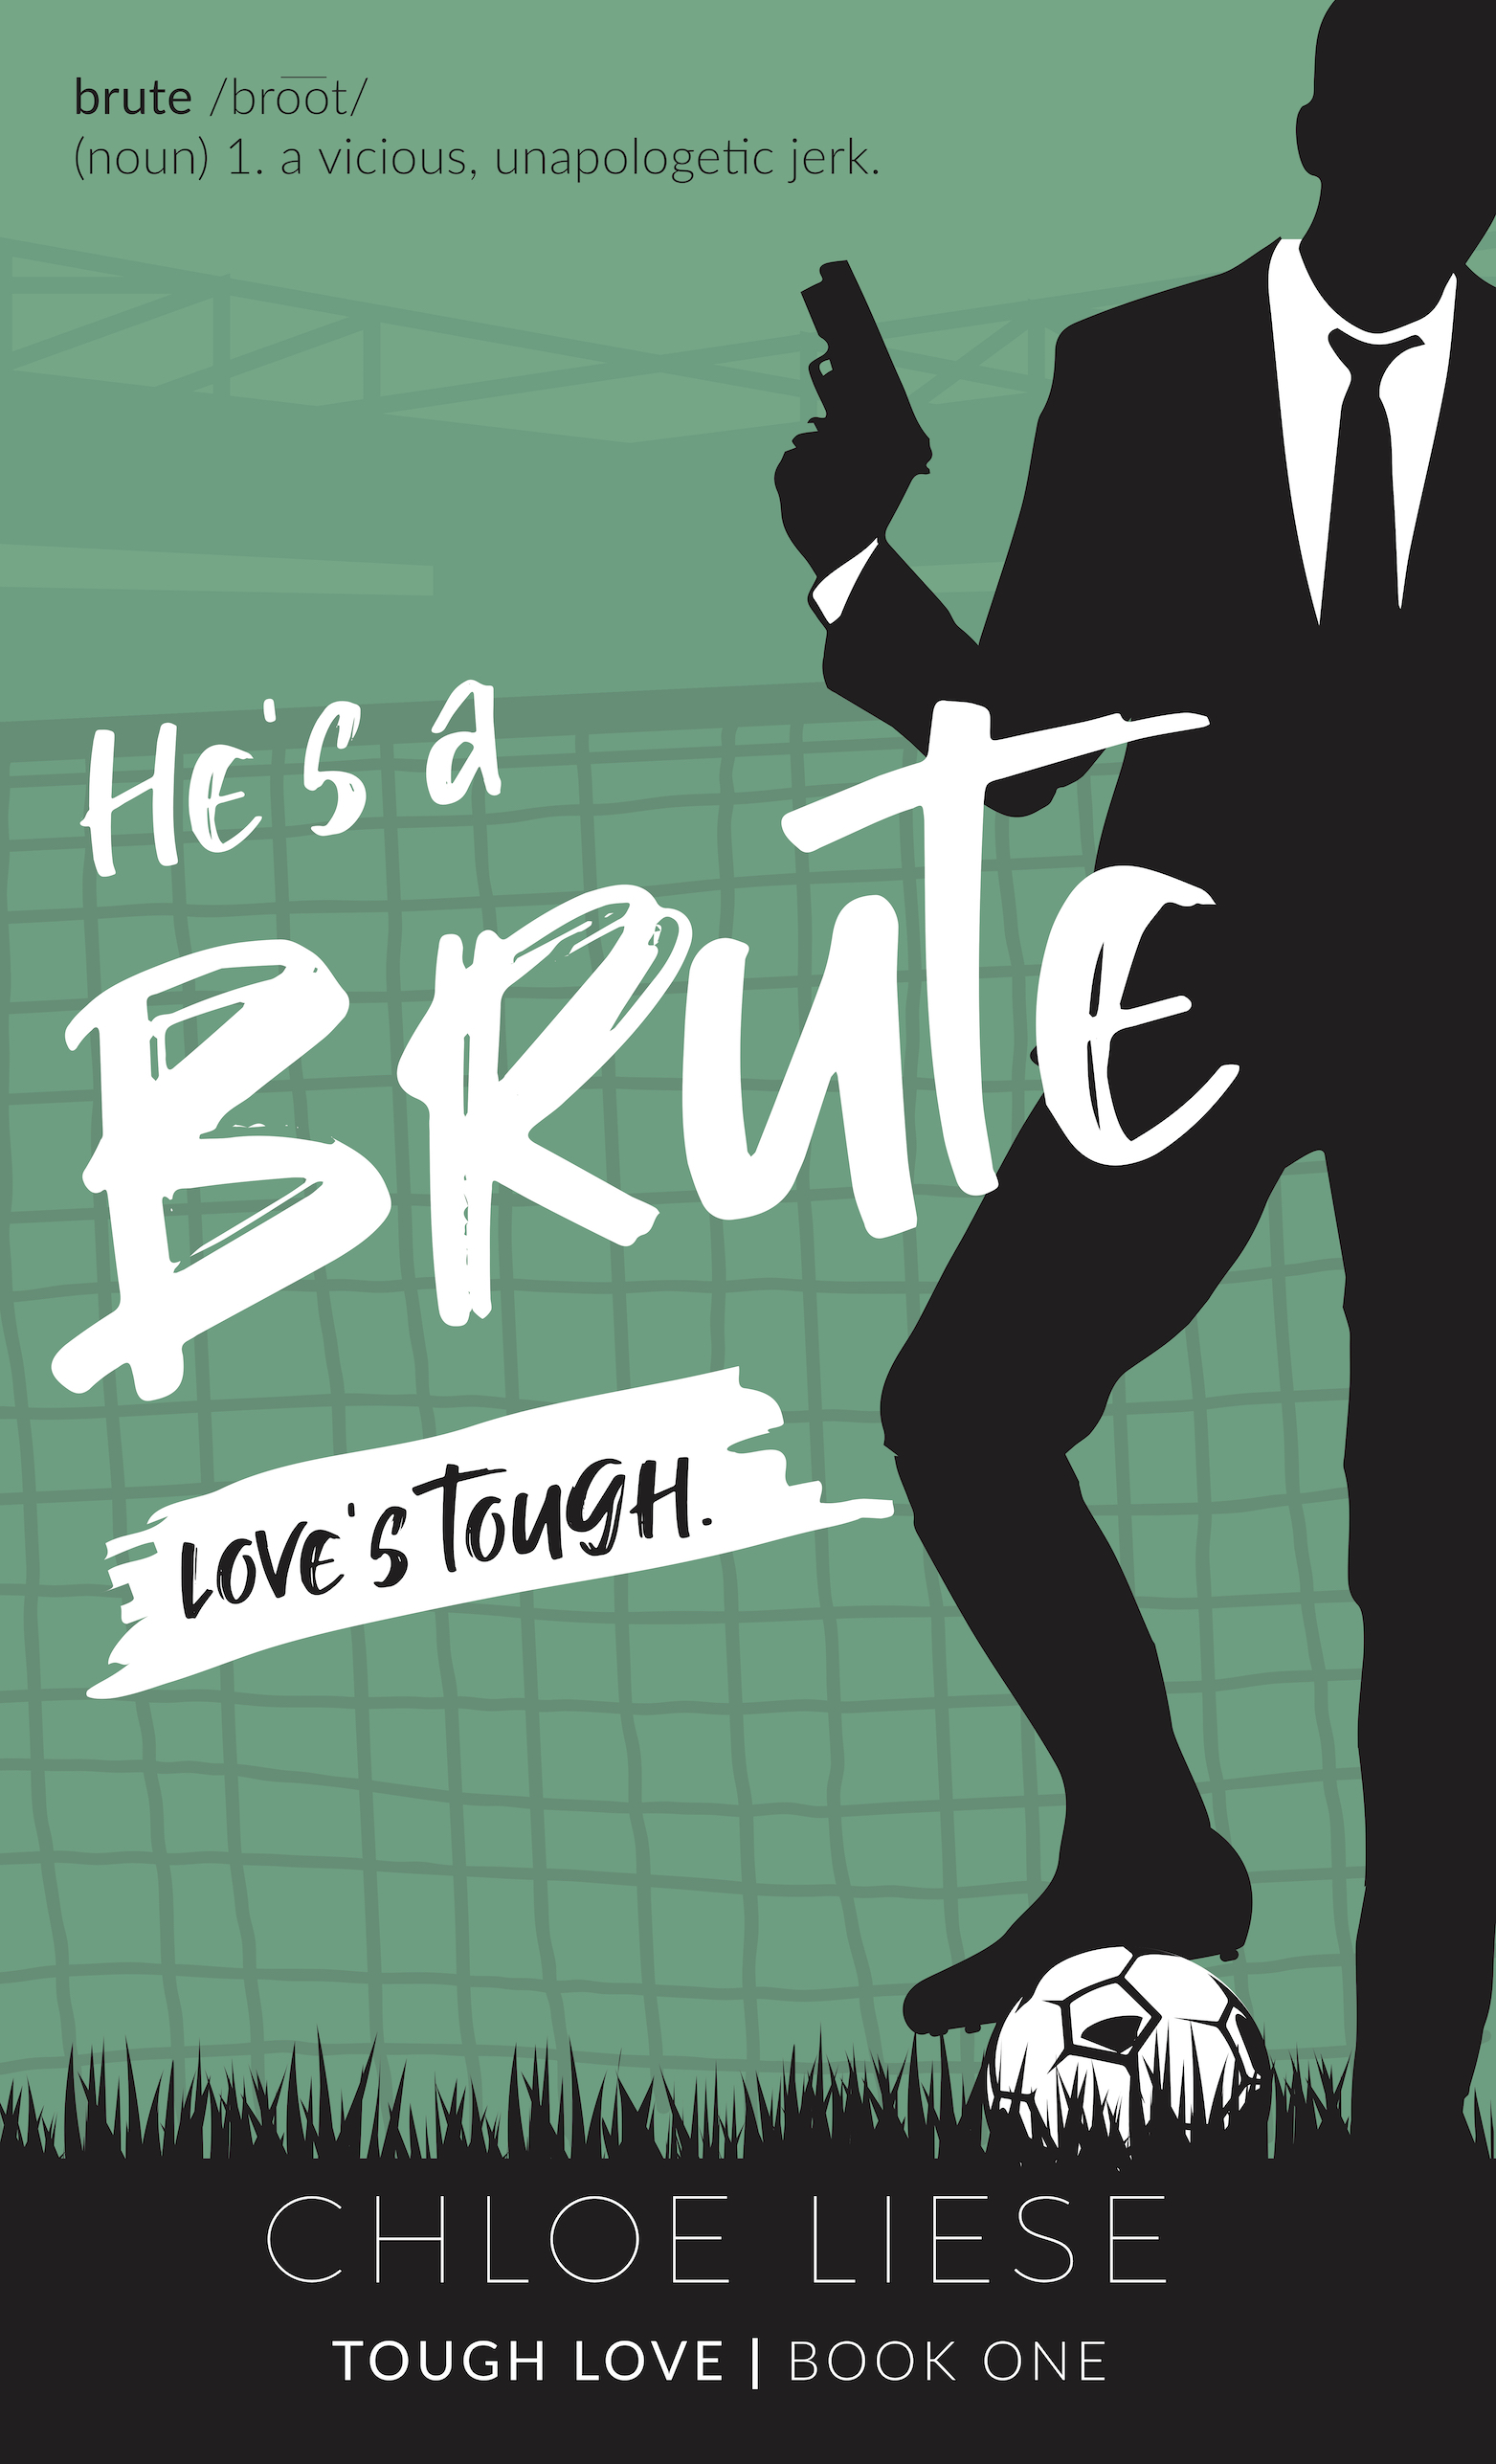 He's a Brute book cover design by Chloe Liese